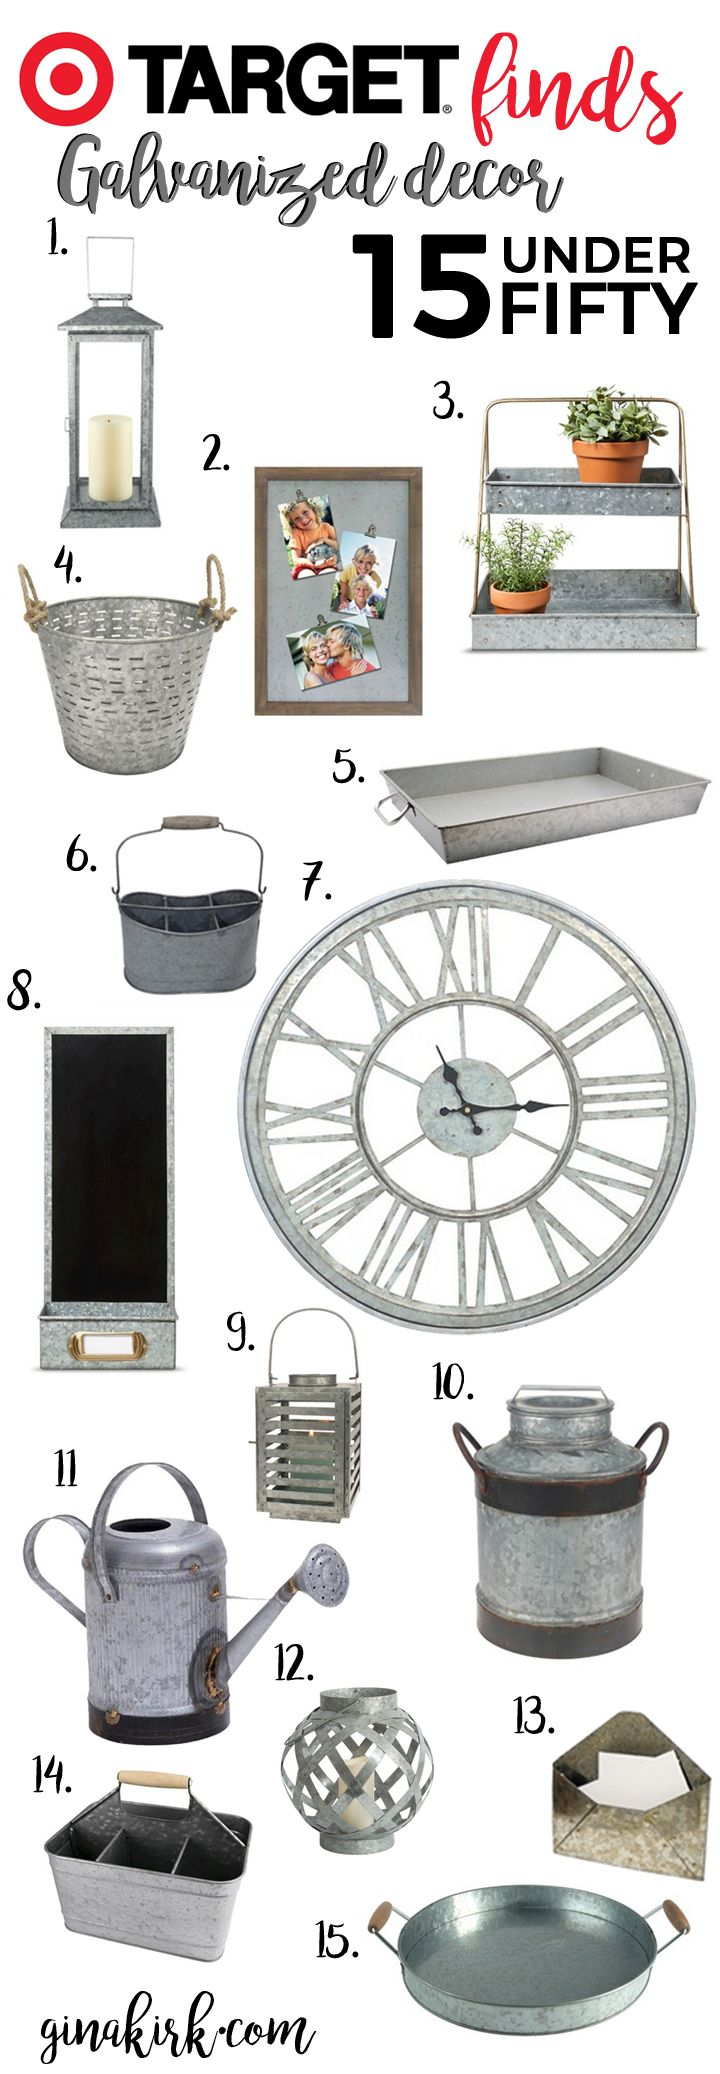 Fixer upper inspired galvanized home decor | Target finds under $50 | Farmhouse design and style inspiration | Fixer upper for less: kitchen, family room, bathroom and more! GinaKirk.com